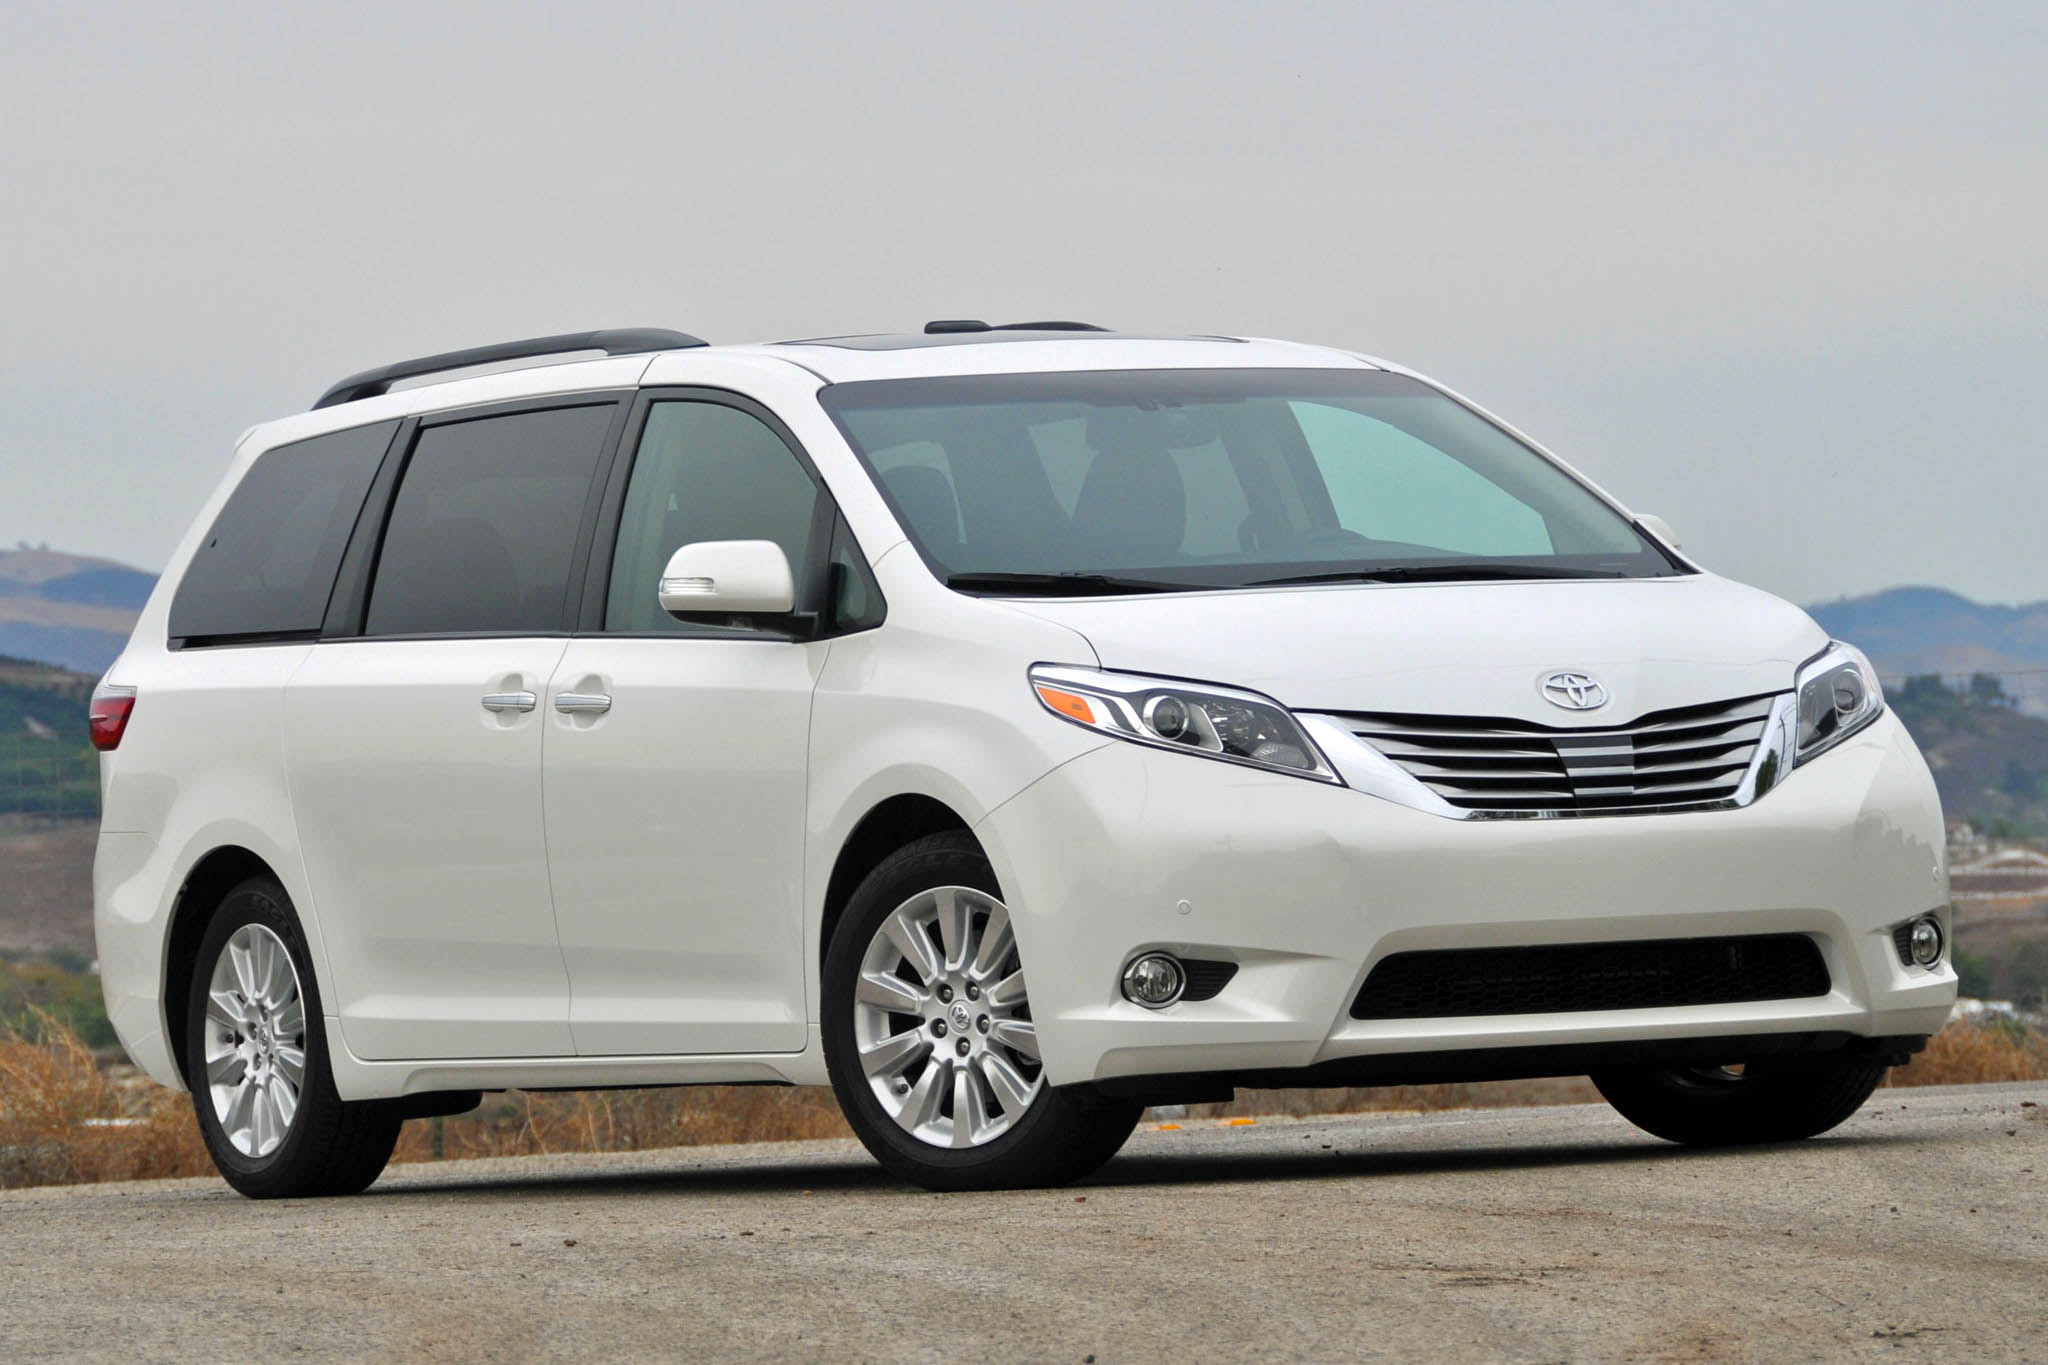 used 2004 toyota sienna for sale pricing features autos post. Black Bedroom Furniture Sets. Home Design Ideas